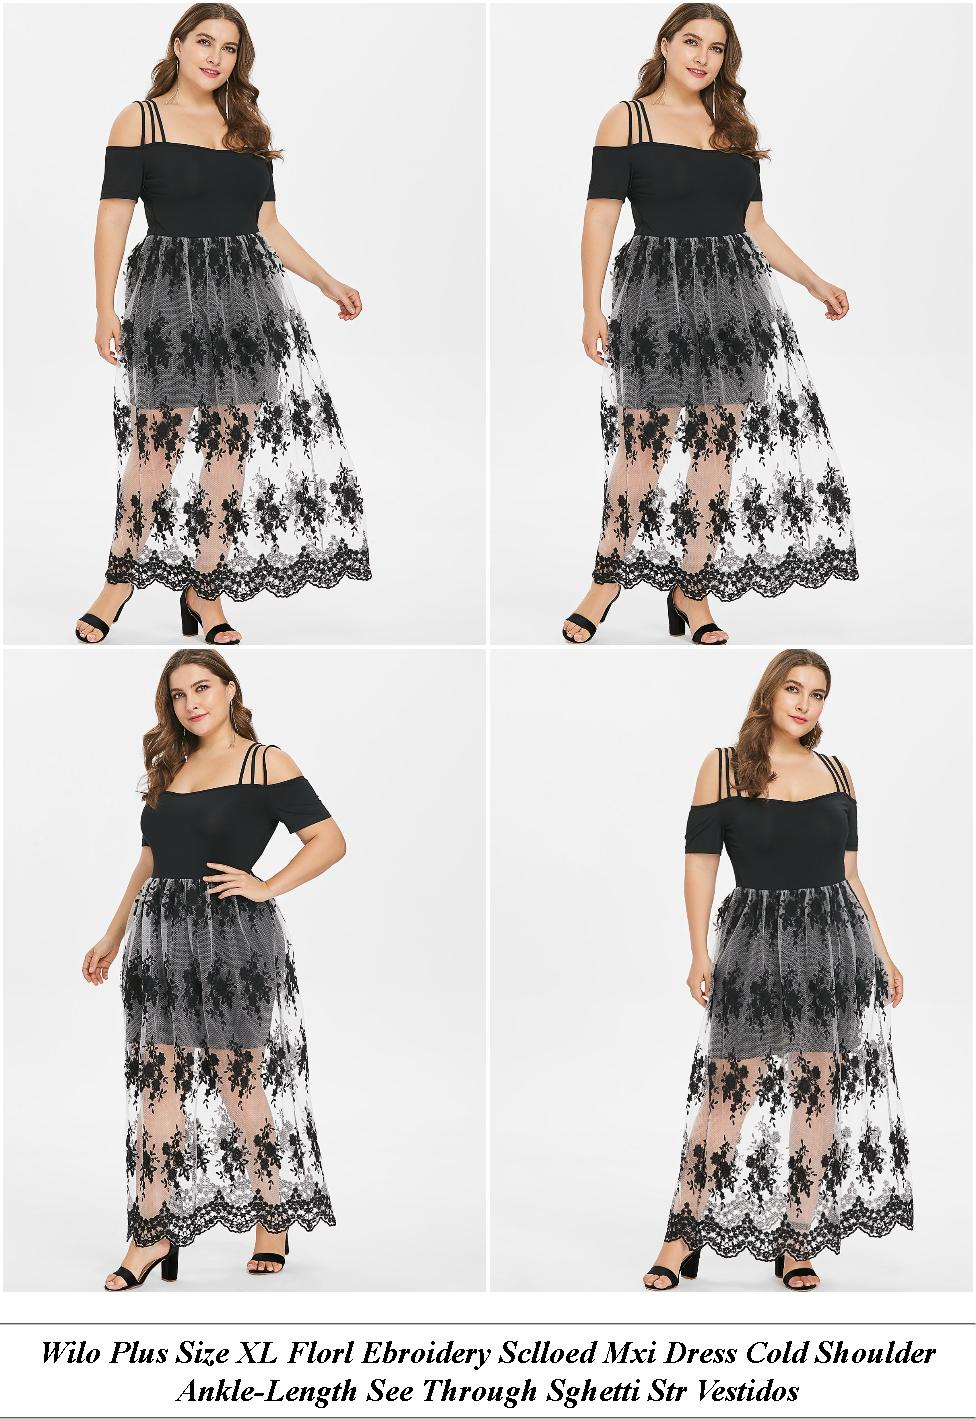 Uy Cocktail Dress Near Me - Winter Clearance Sale Online Usa - Womens Short Dresses Online Shopping